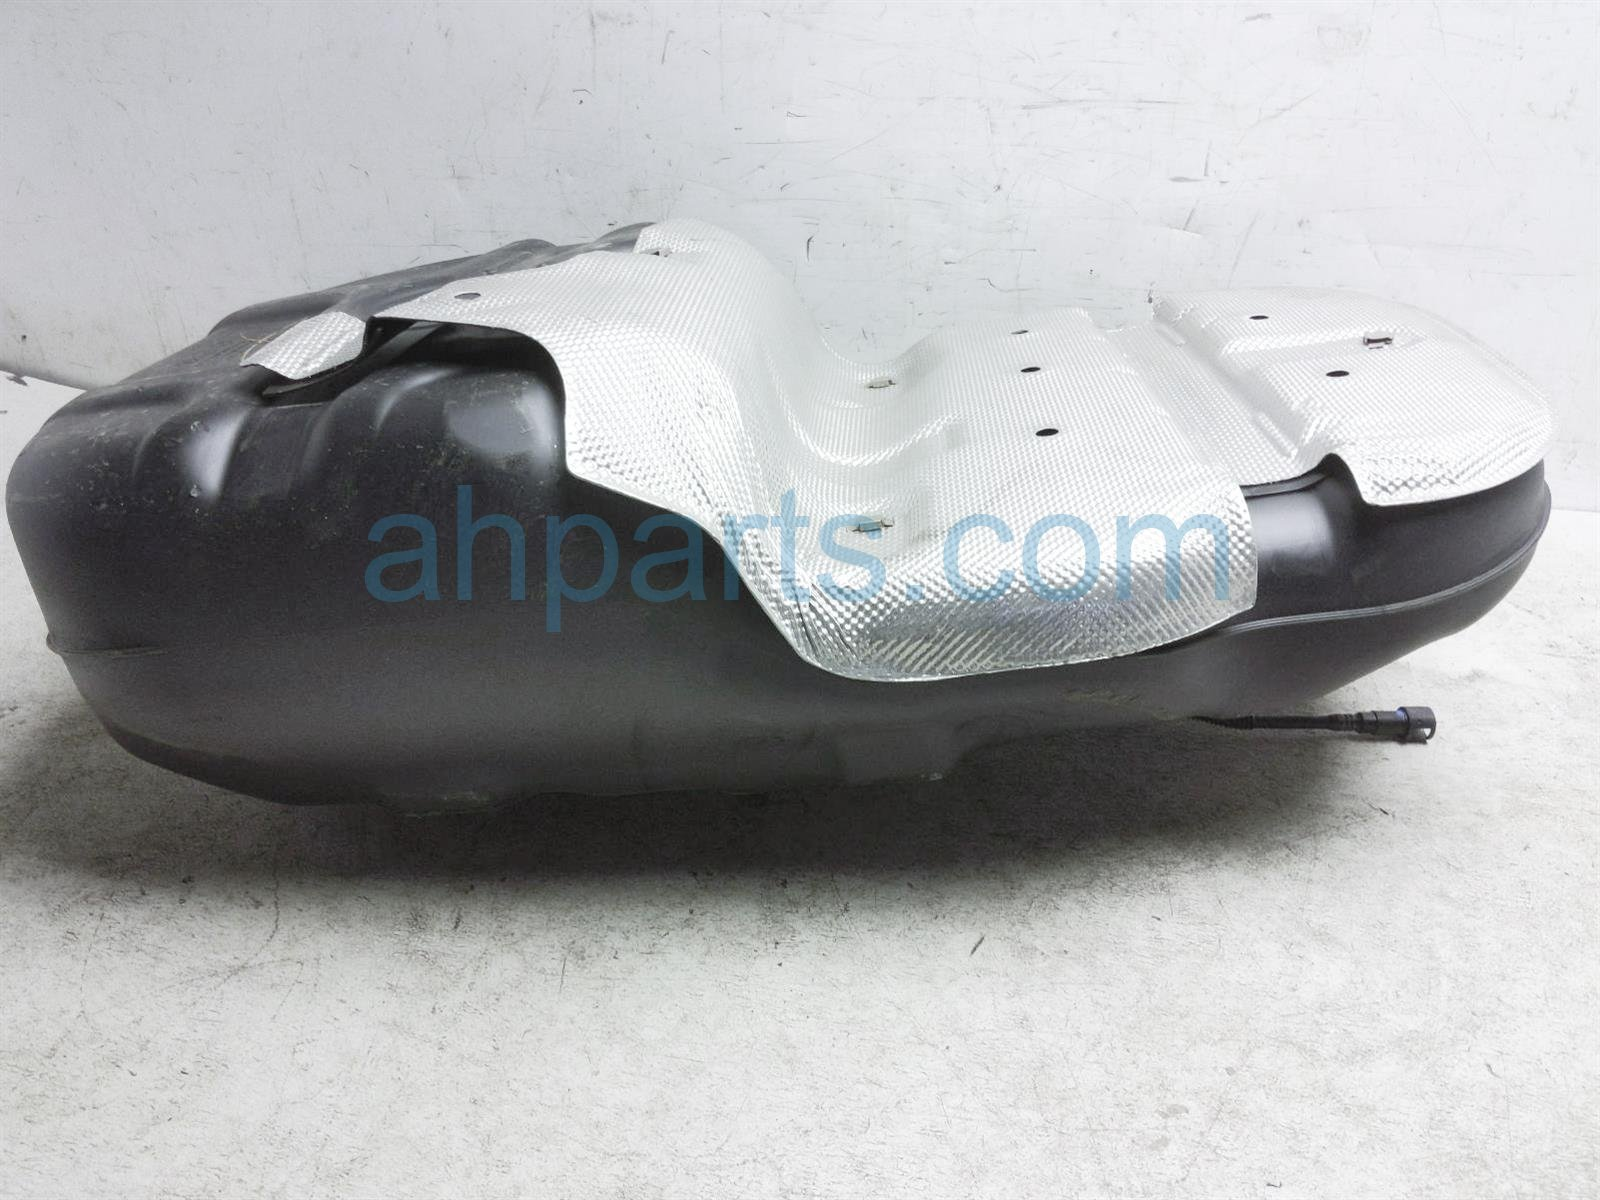 2019 Honda Passport Gas / Fuel Tank 17044 TG7 A11 Replacement